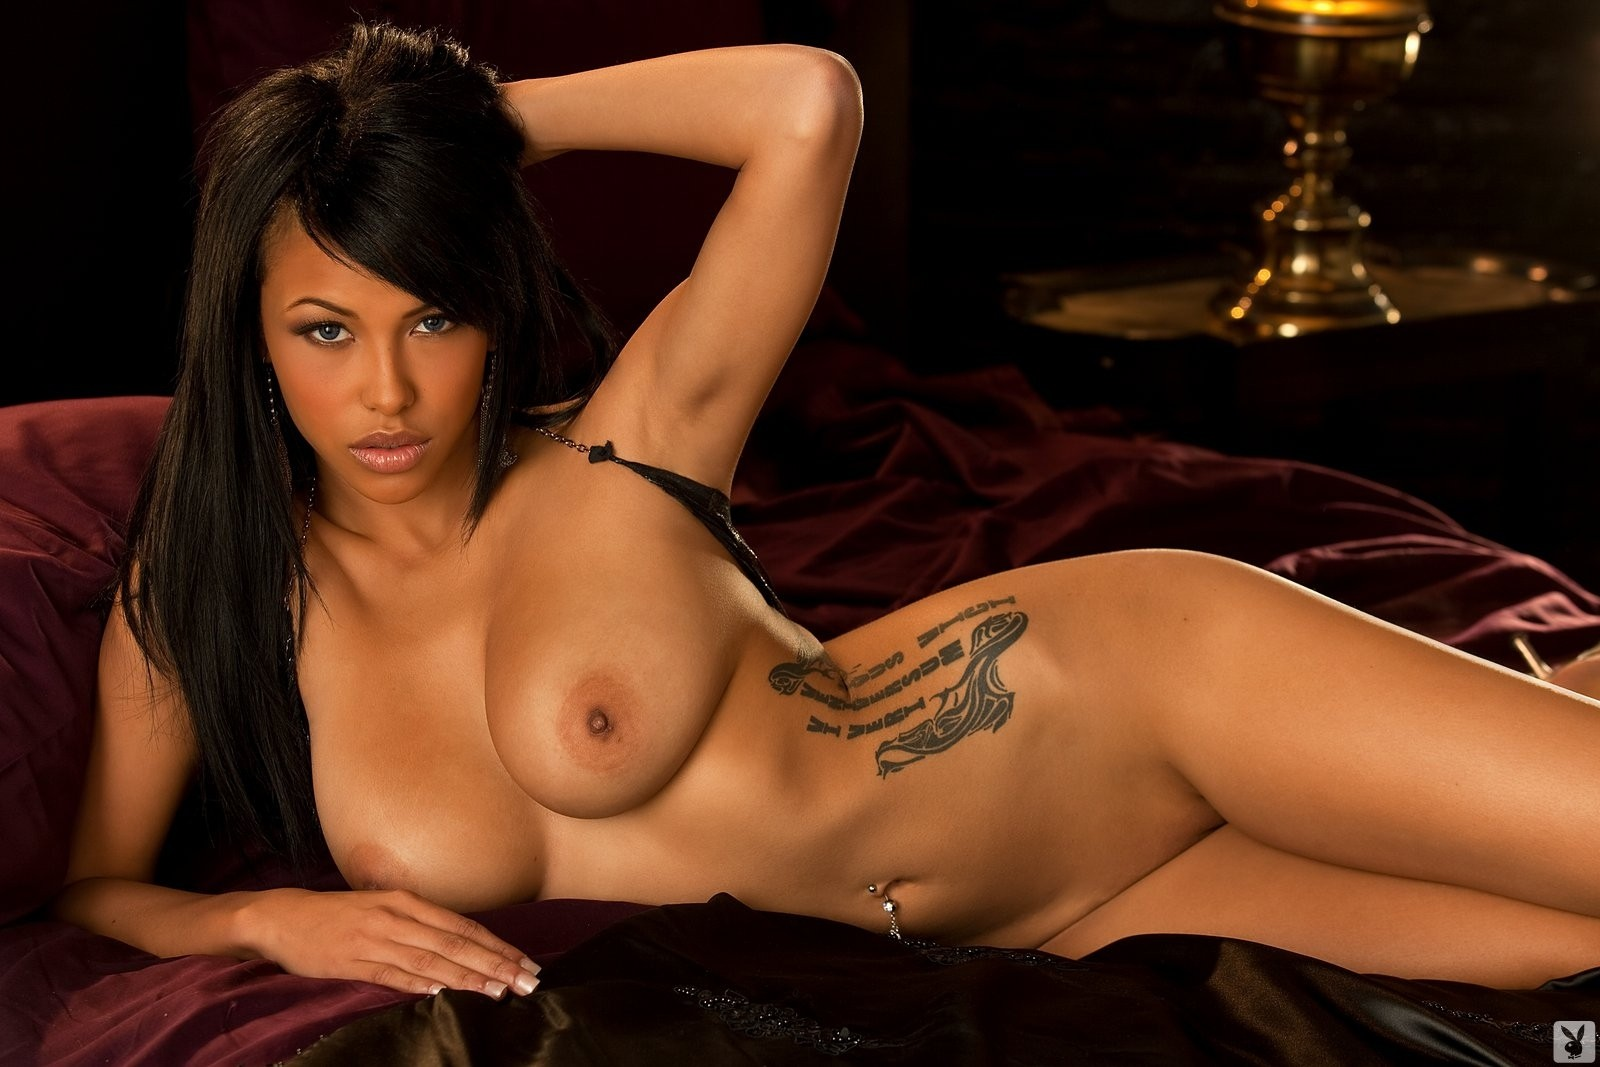 Kylee girls of the sec playboy nude, nude mixed oil wrestling gif